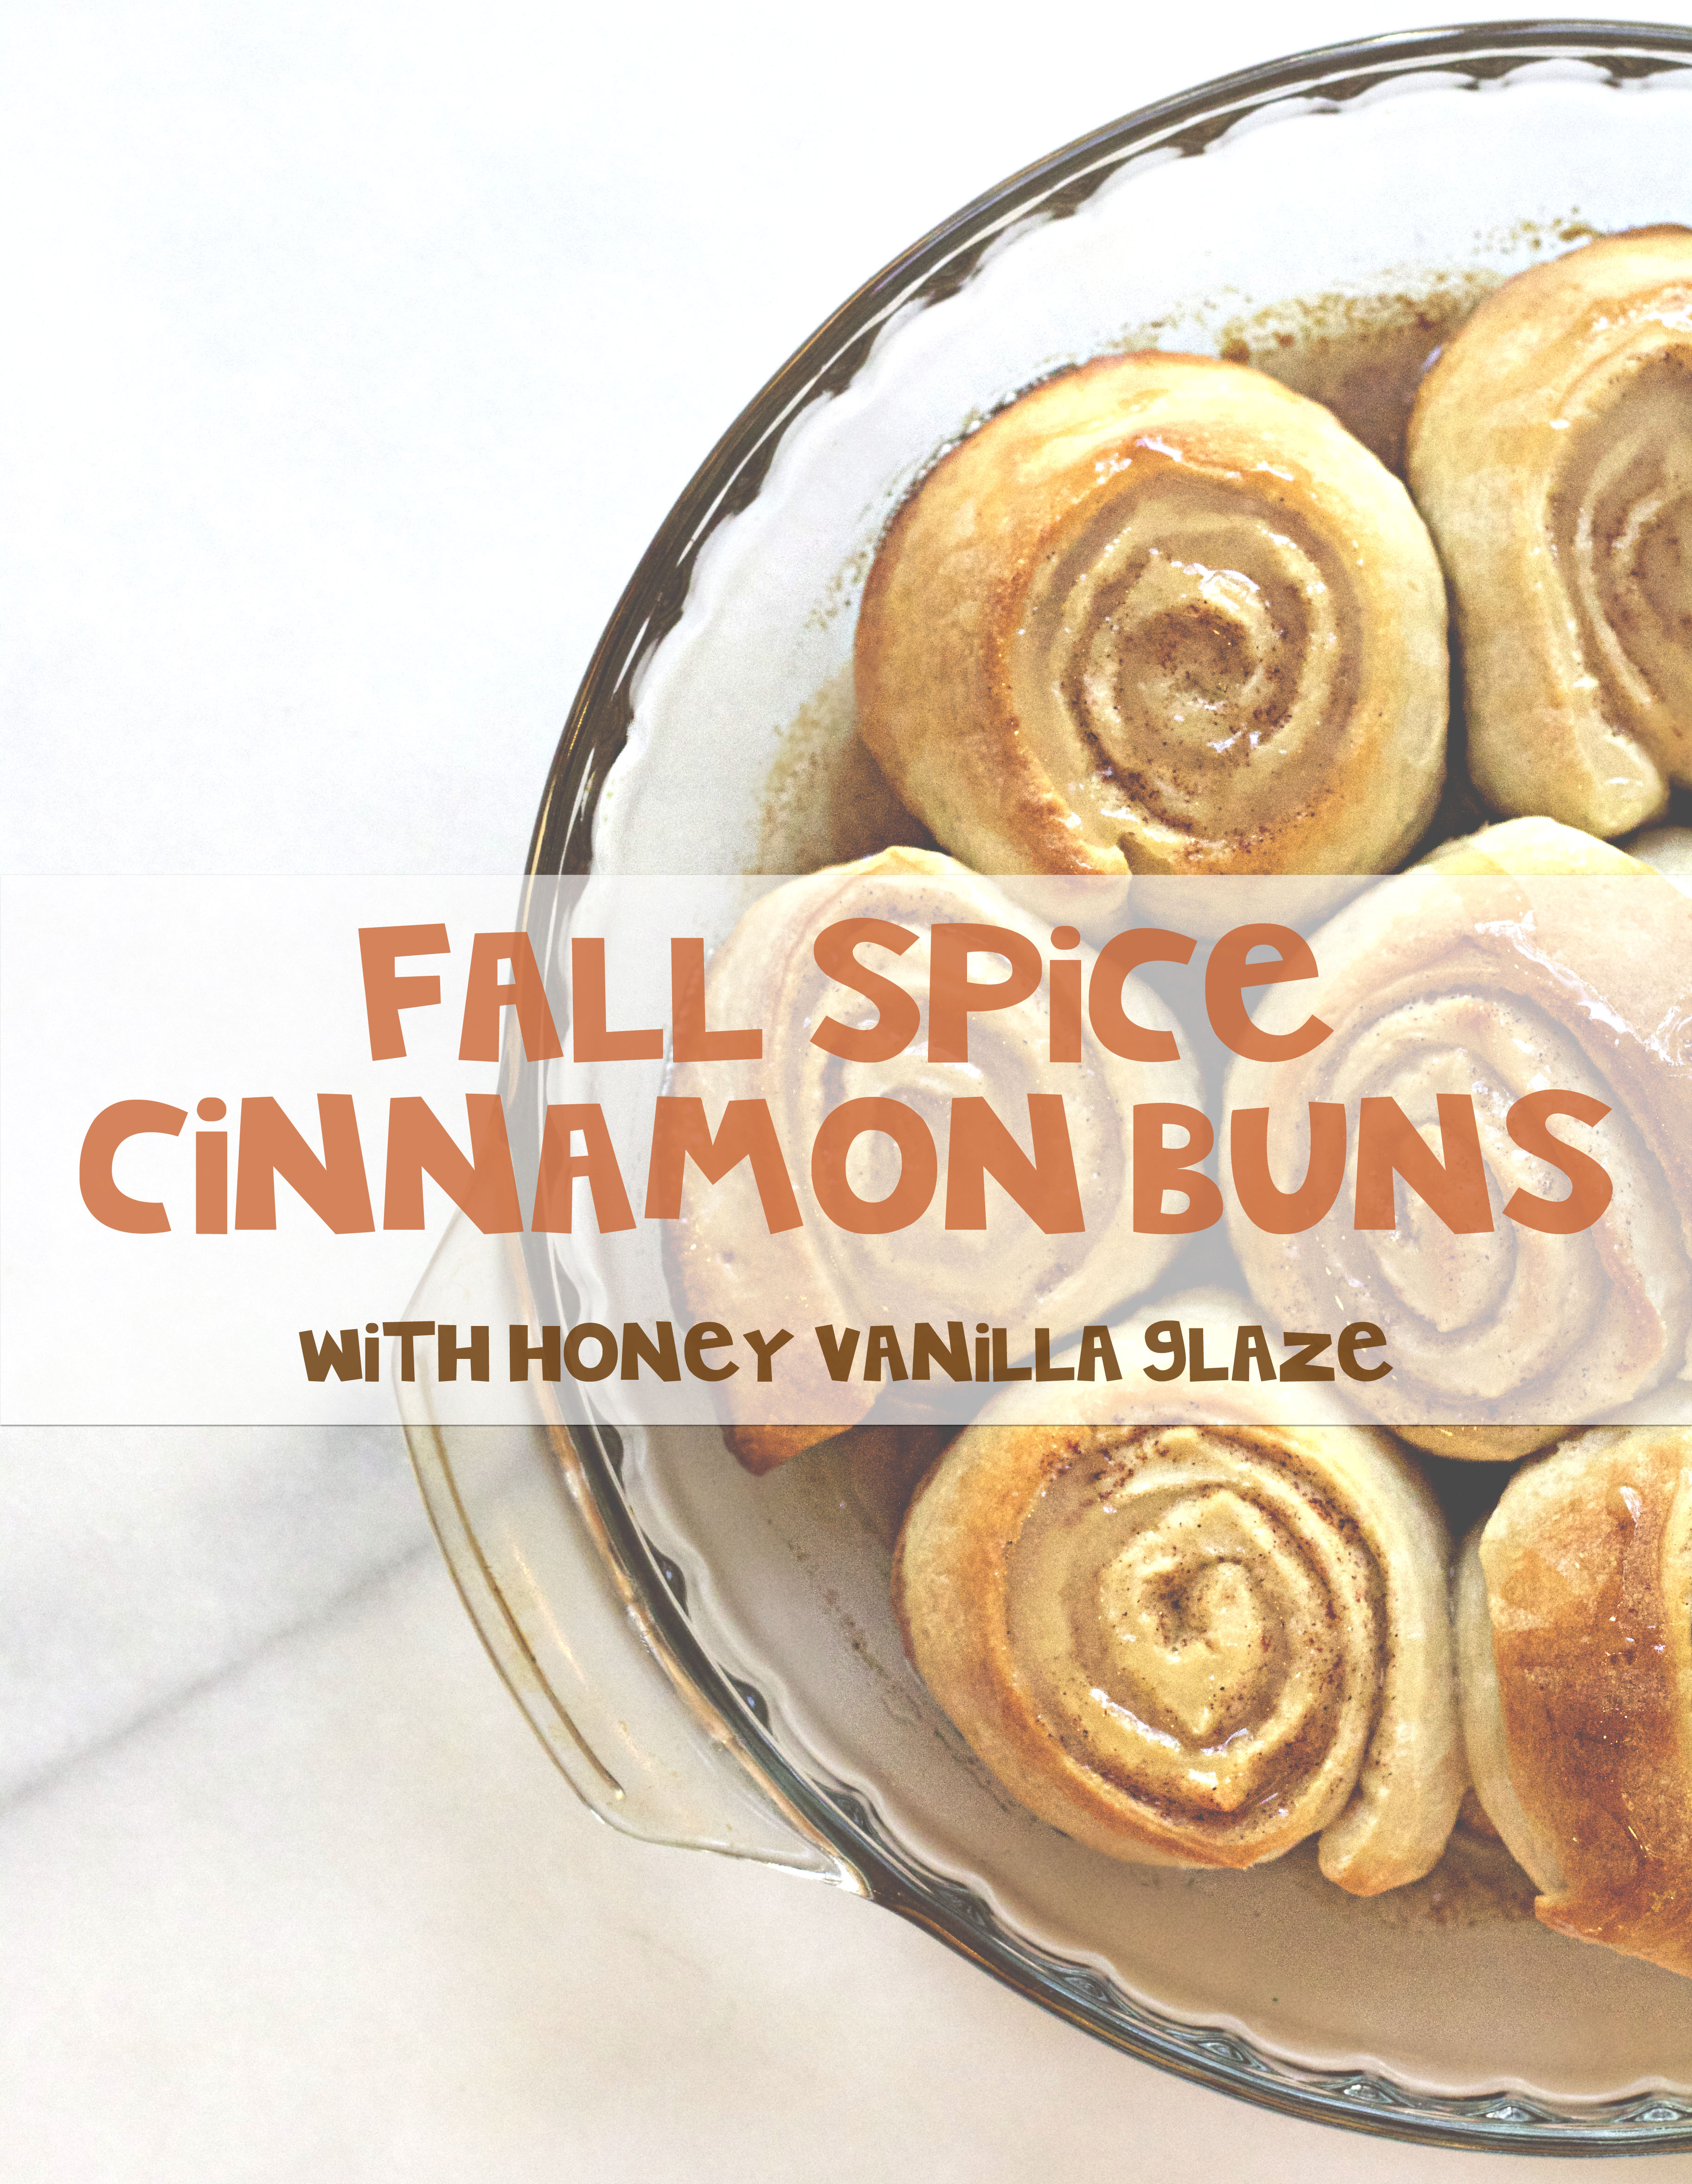 Fall Spice Cinnamon Buns